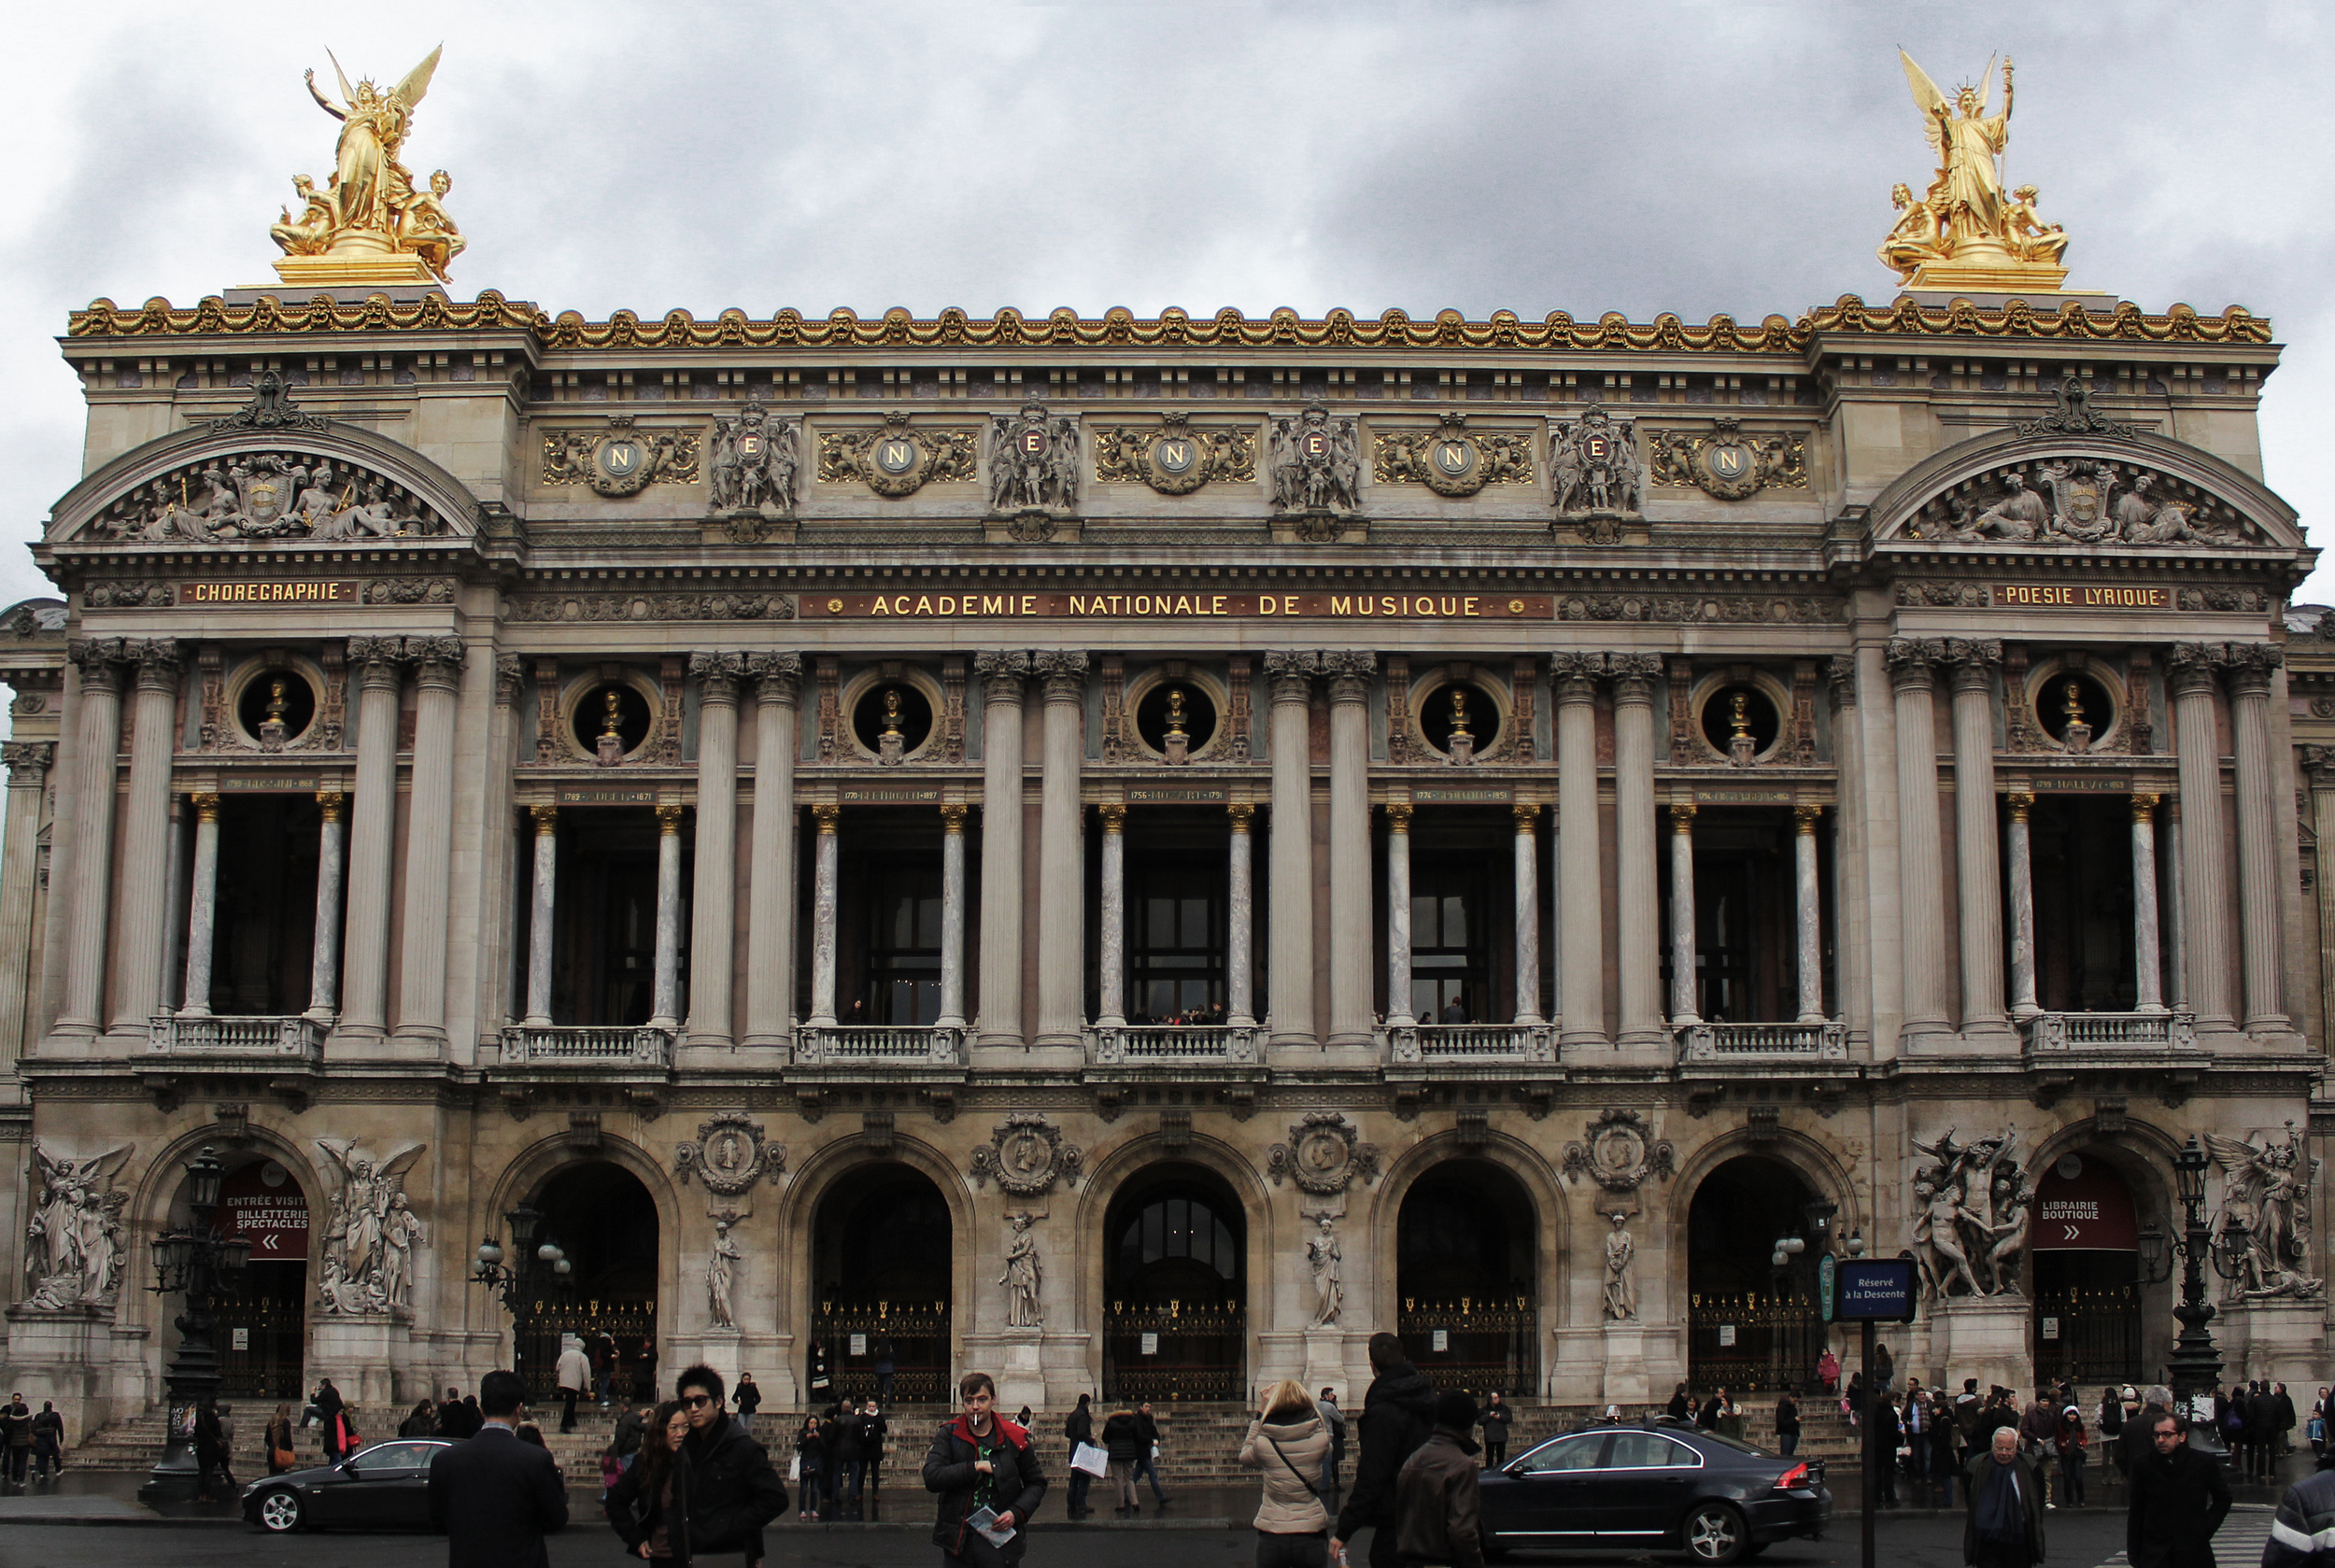 Paris_opera_house.jpg